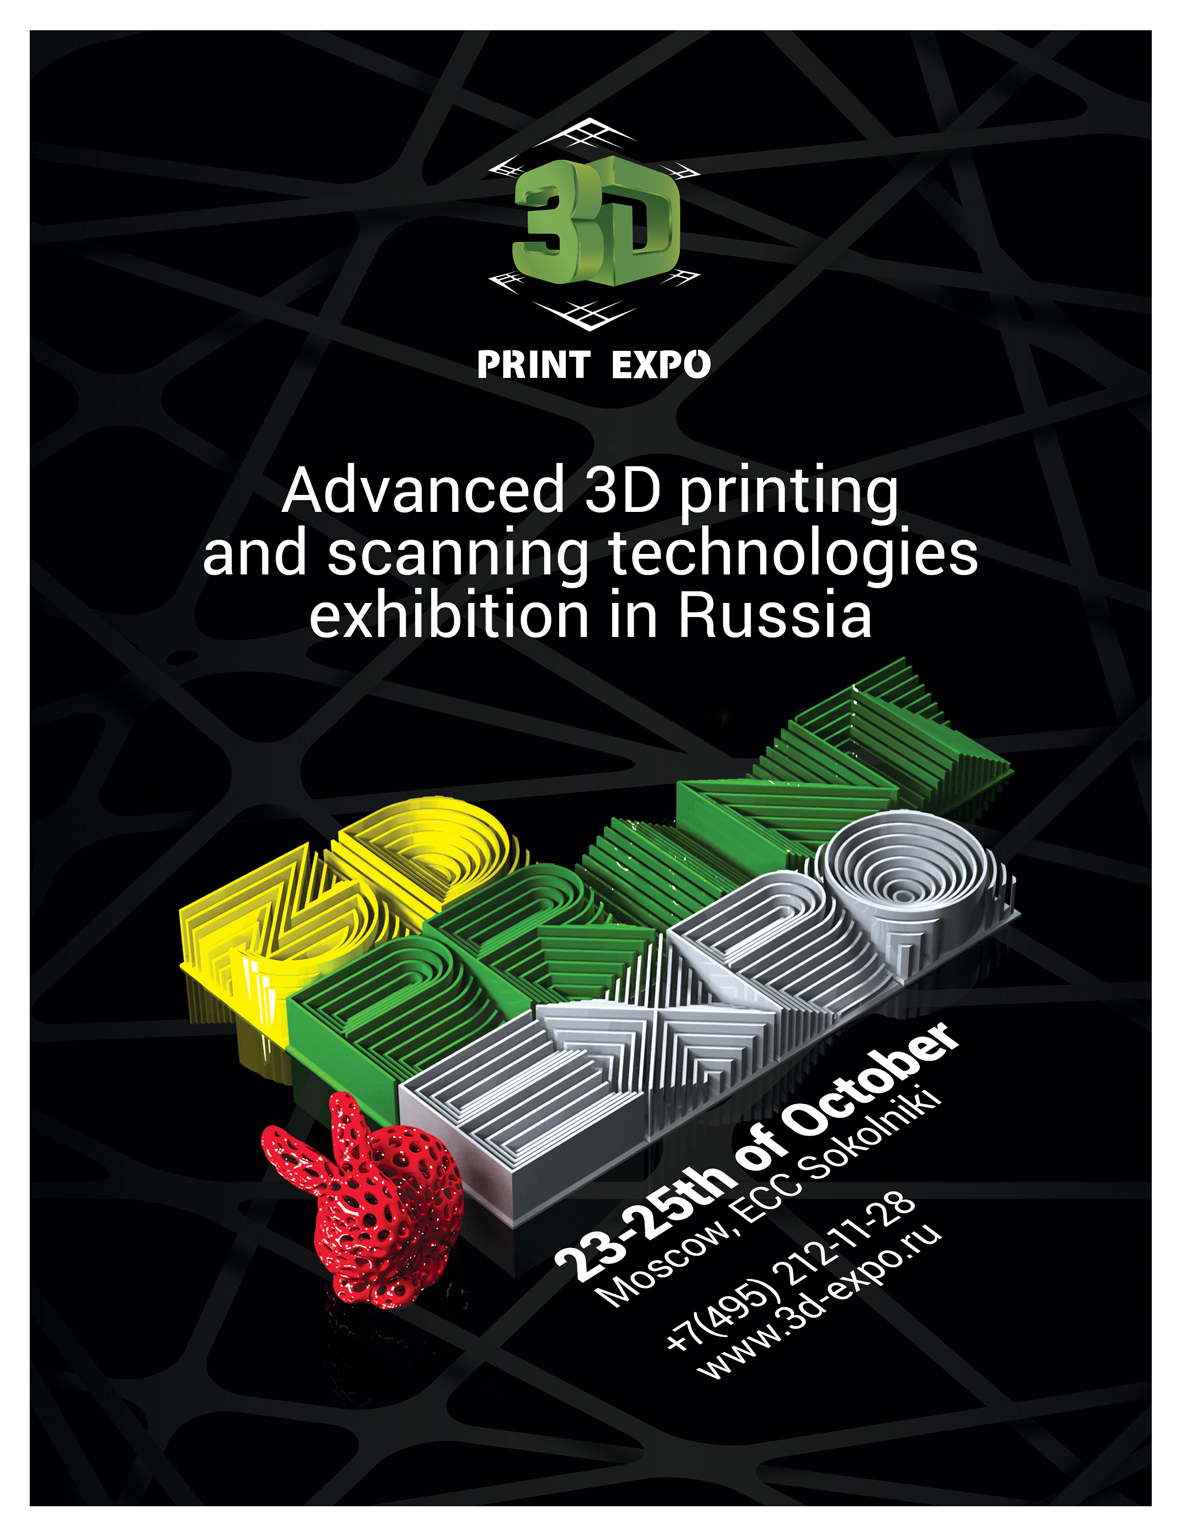 3D Print Expo: what will take your breath away at the second exhibition